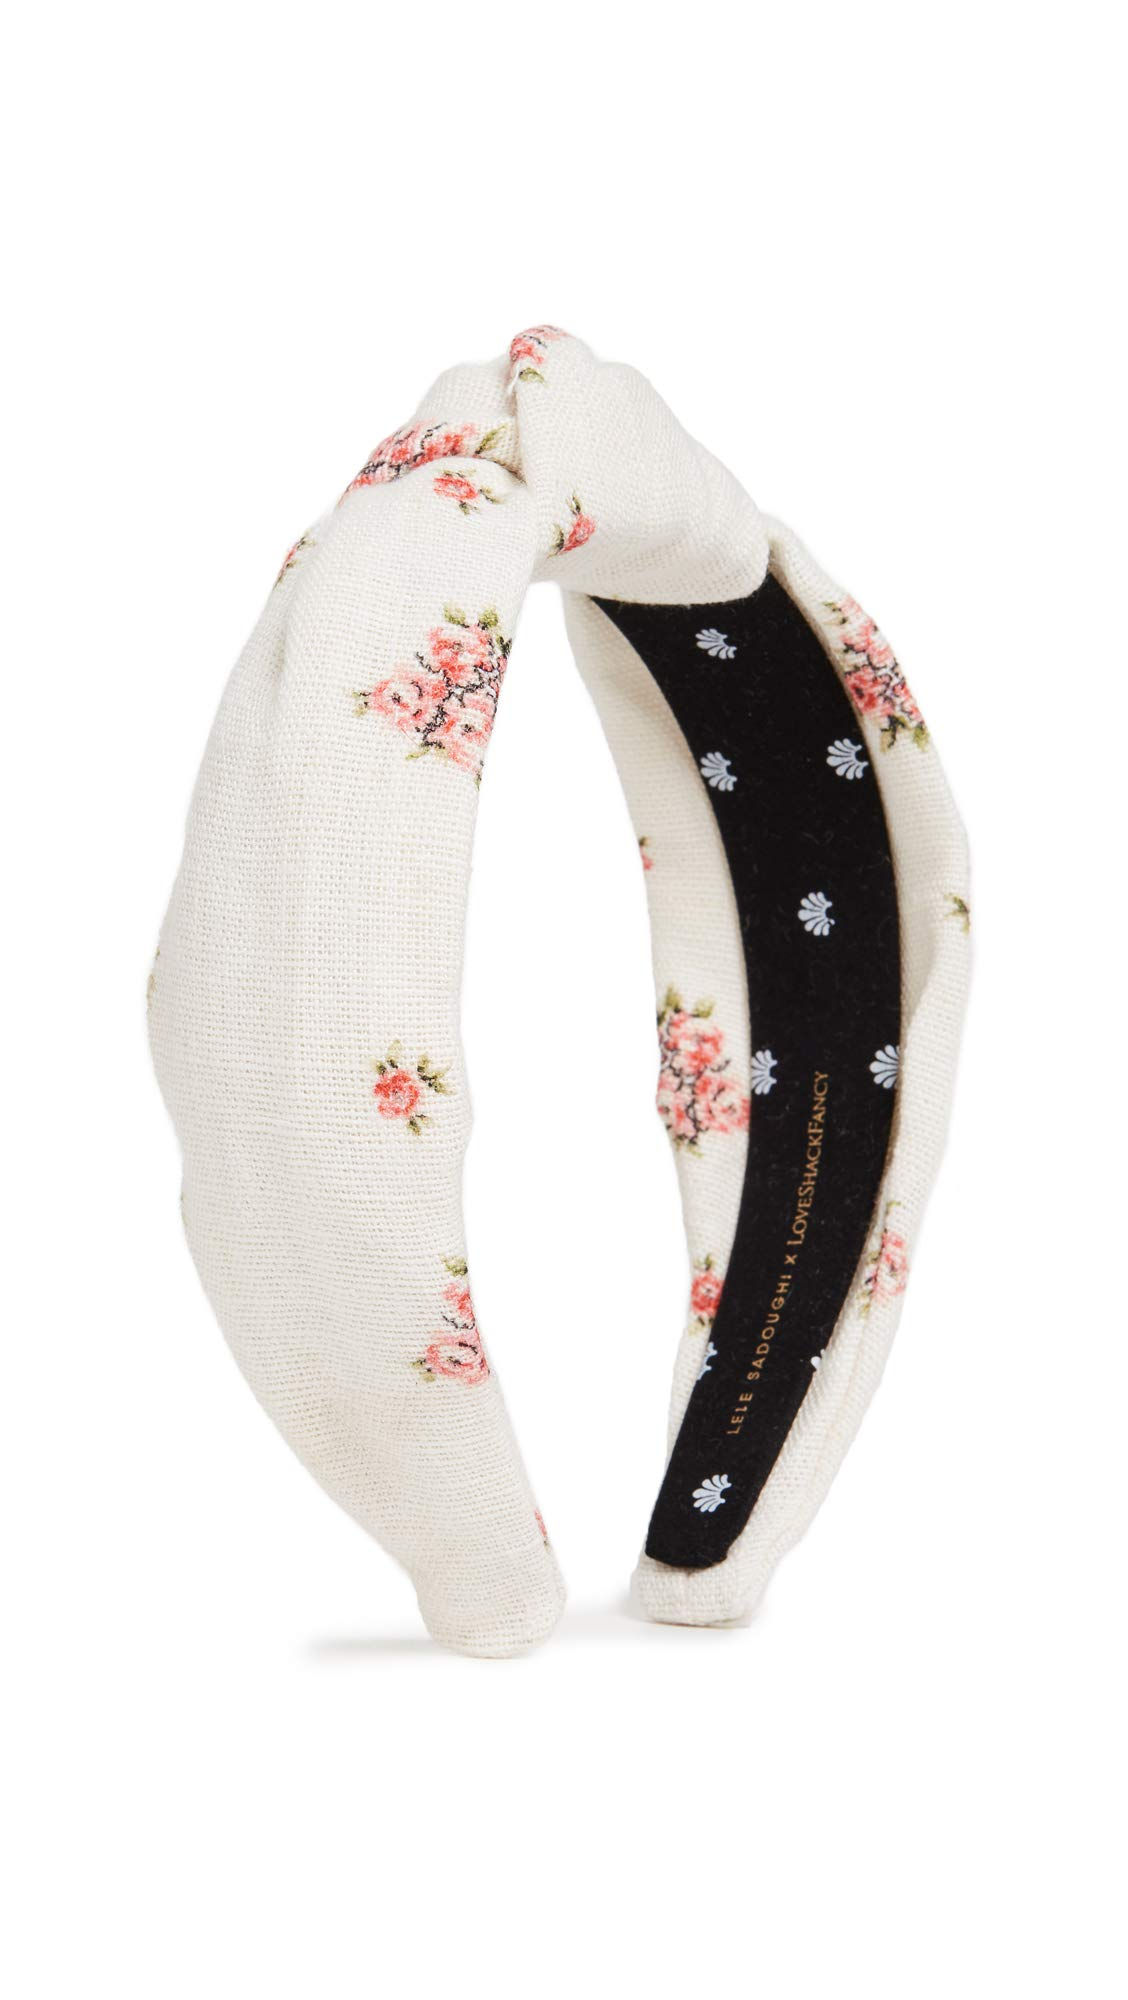 Lele Sadoughi Women's x Loveshackfancy Headband, French Cream, Off White, Floral, One Size by Lele Sadoughi